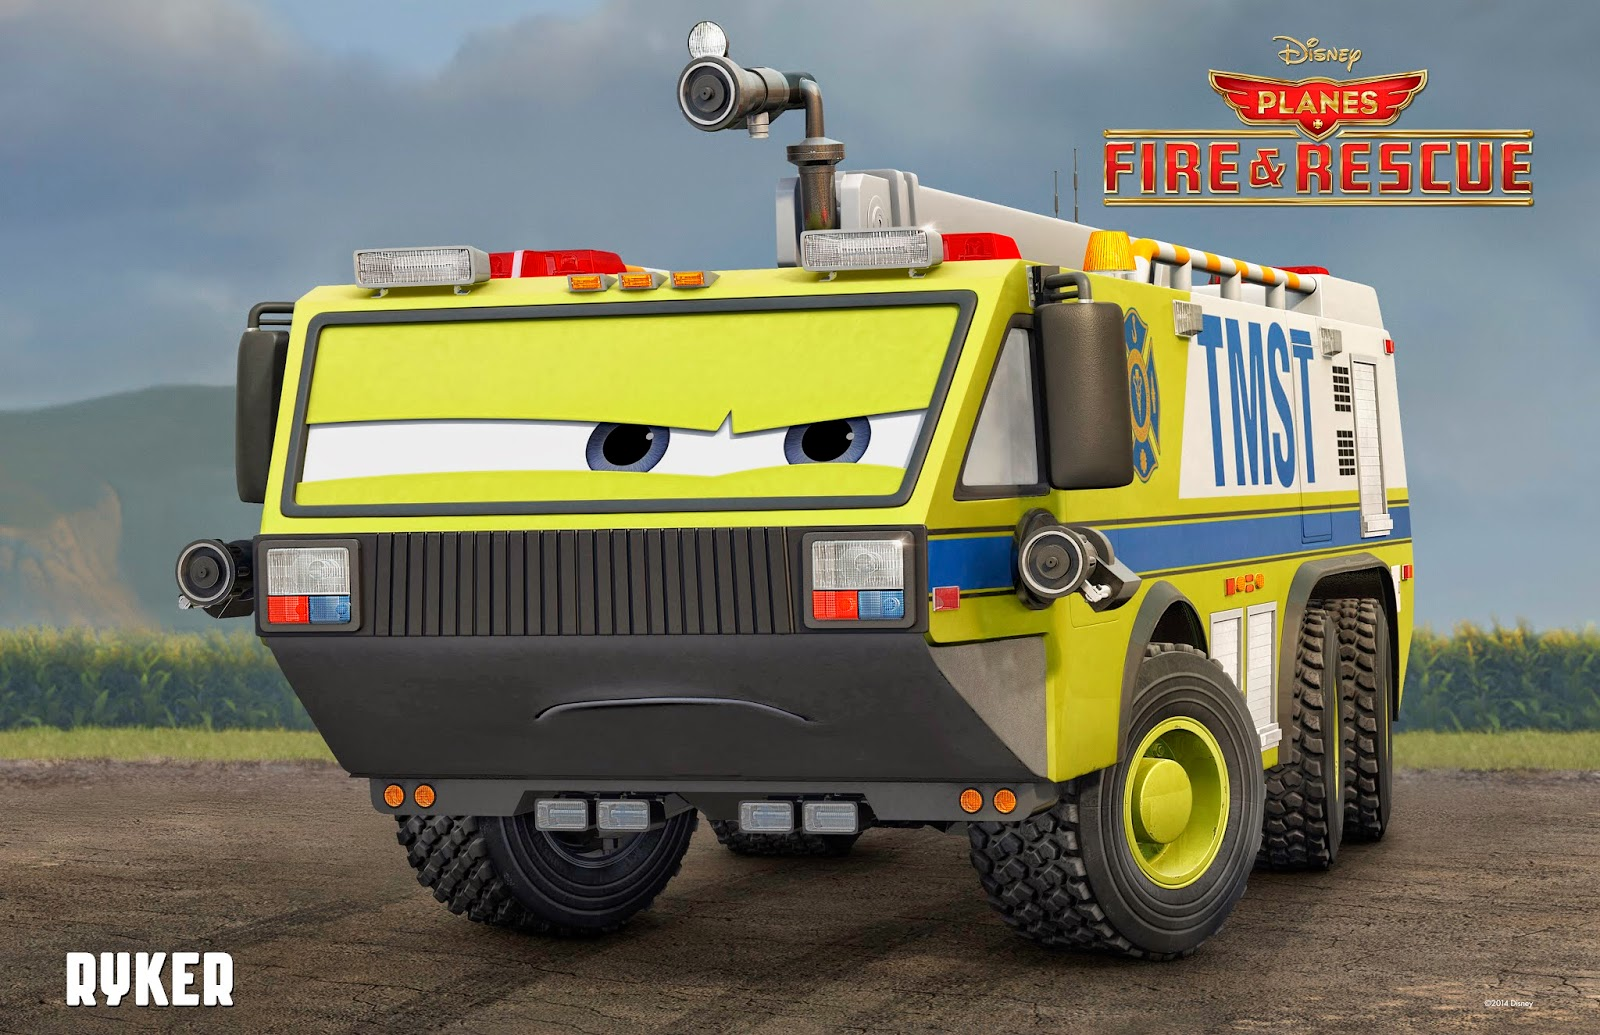 Ryker from Disney's Planes: Fire & Rescue